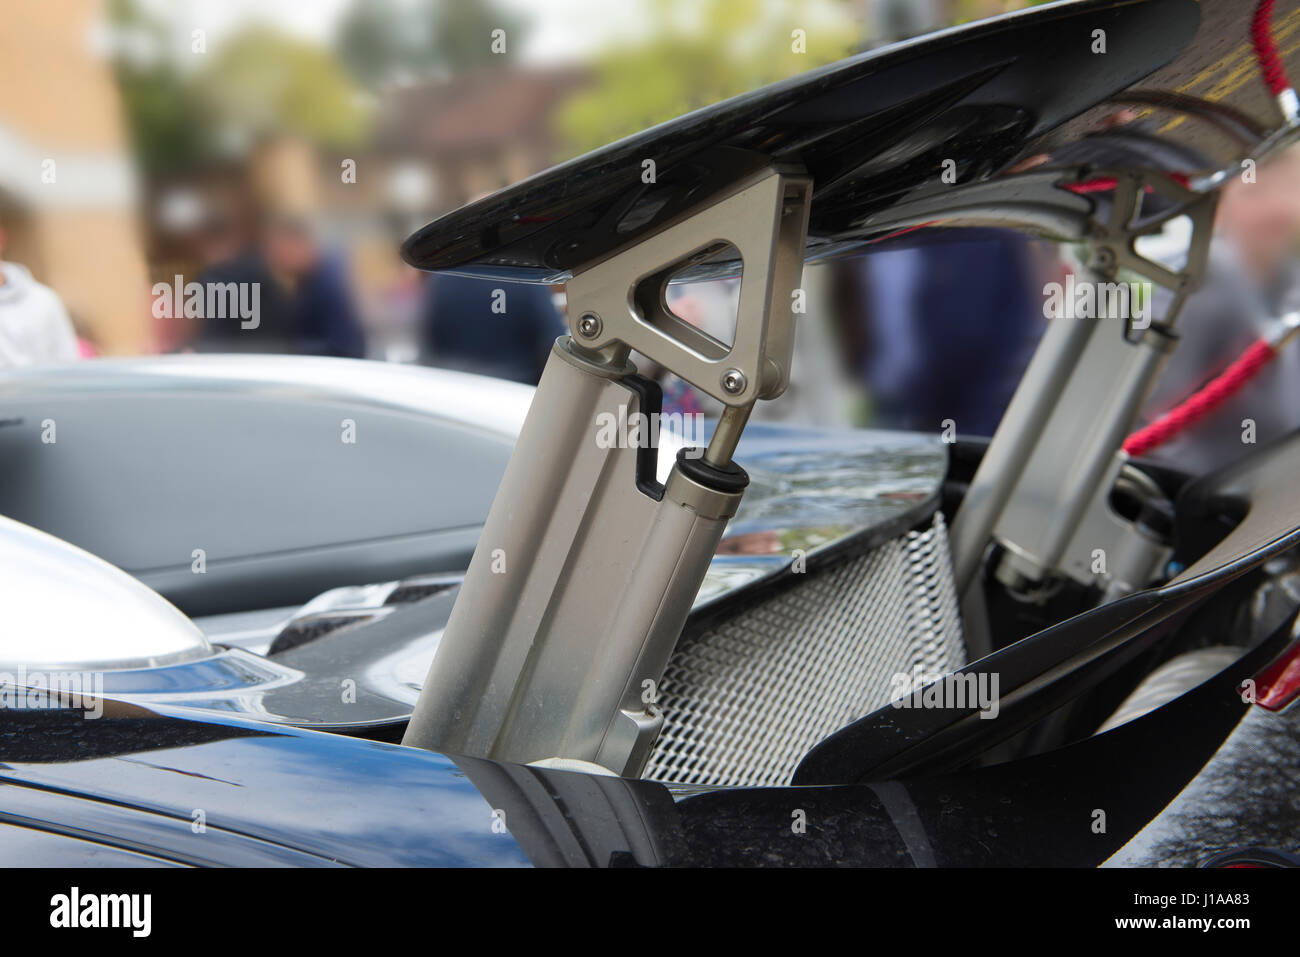 Detail of the rear wing mechanism of the £1.3M Bugatti Veyron hypercar - Stock Image